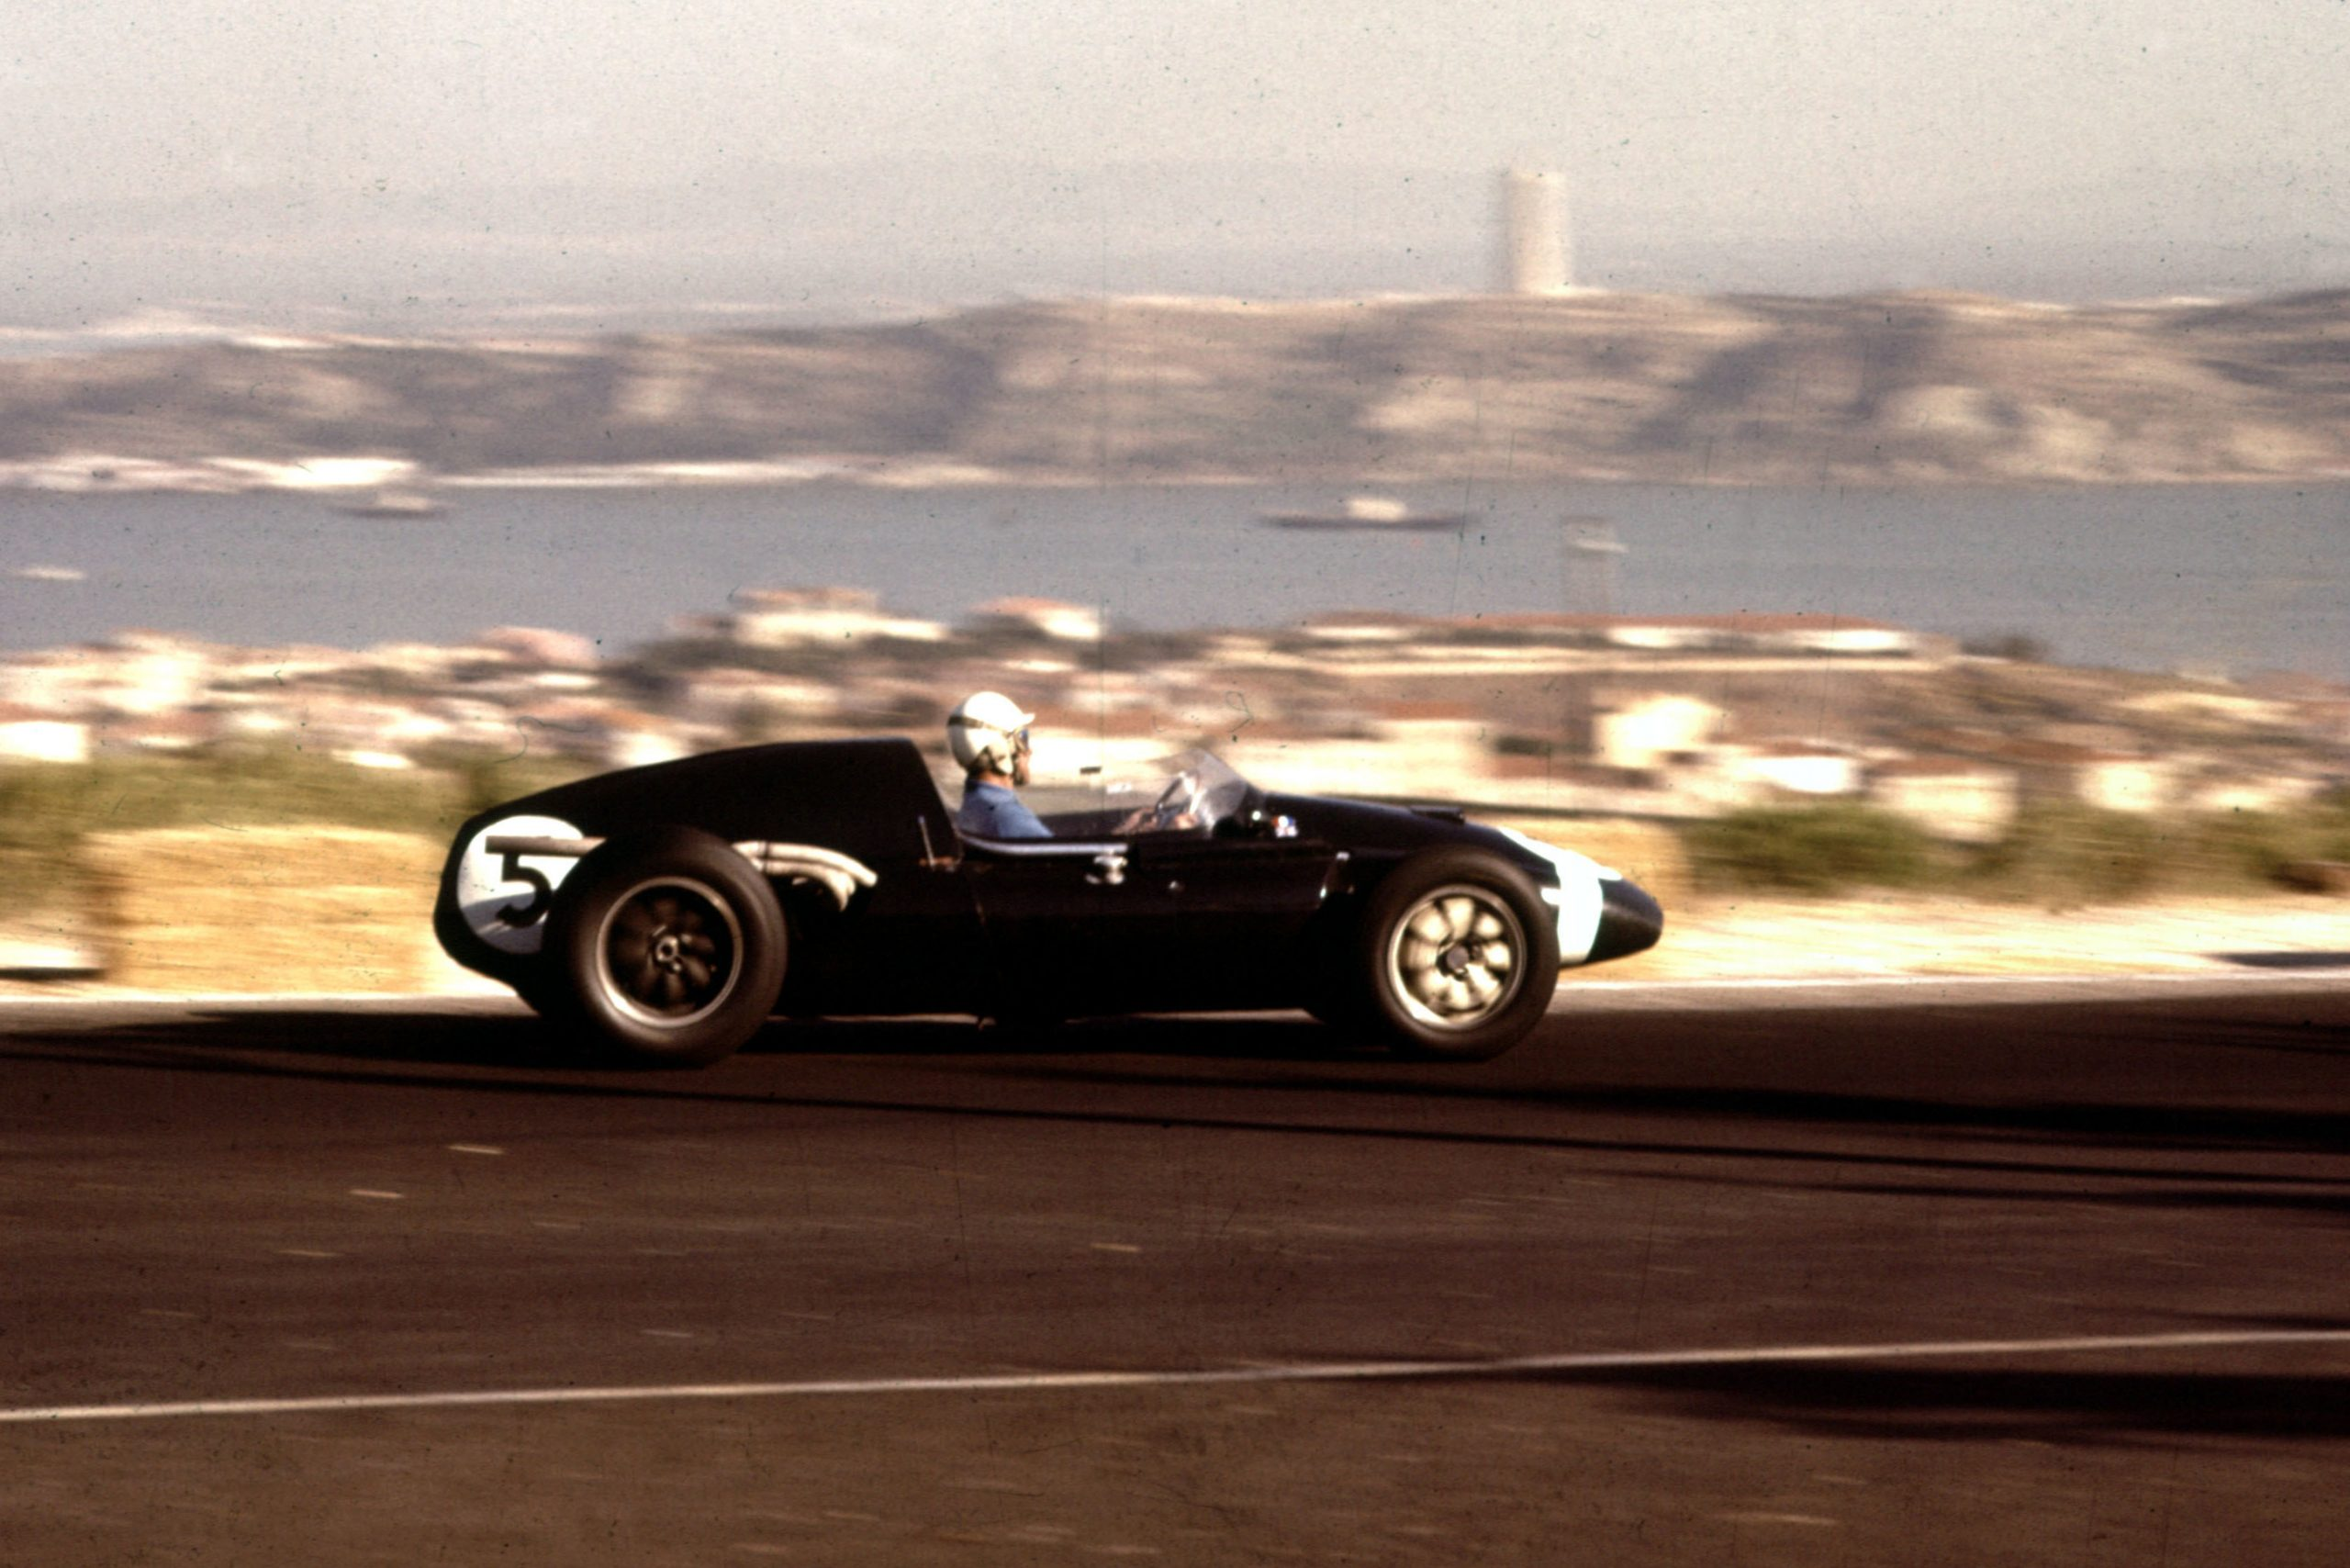 Maurice Trintignant at the wheel of his Cooper T51 Climax.